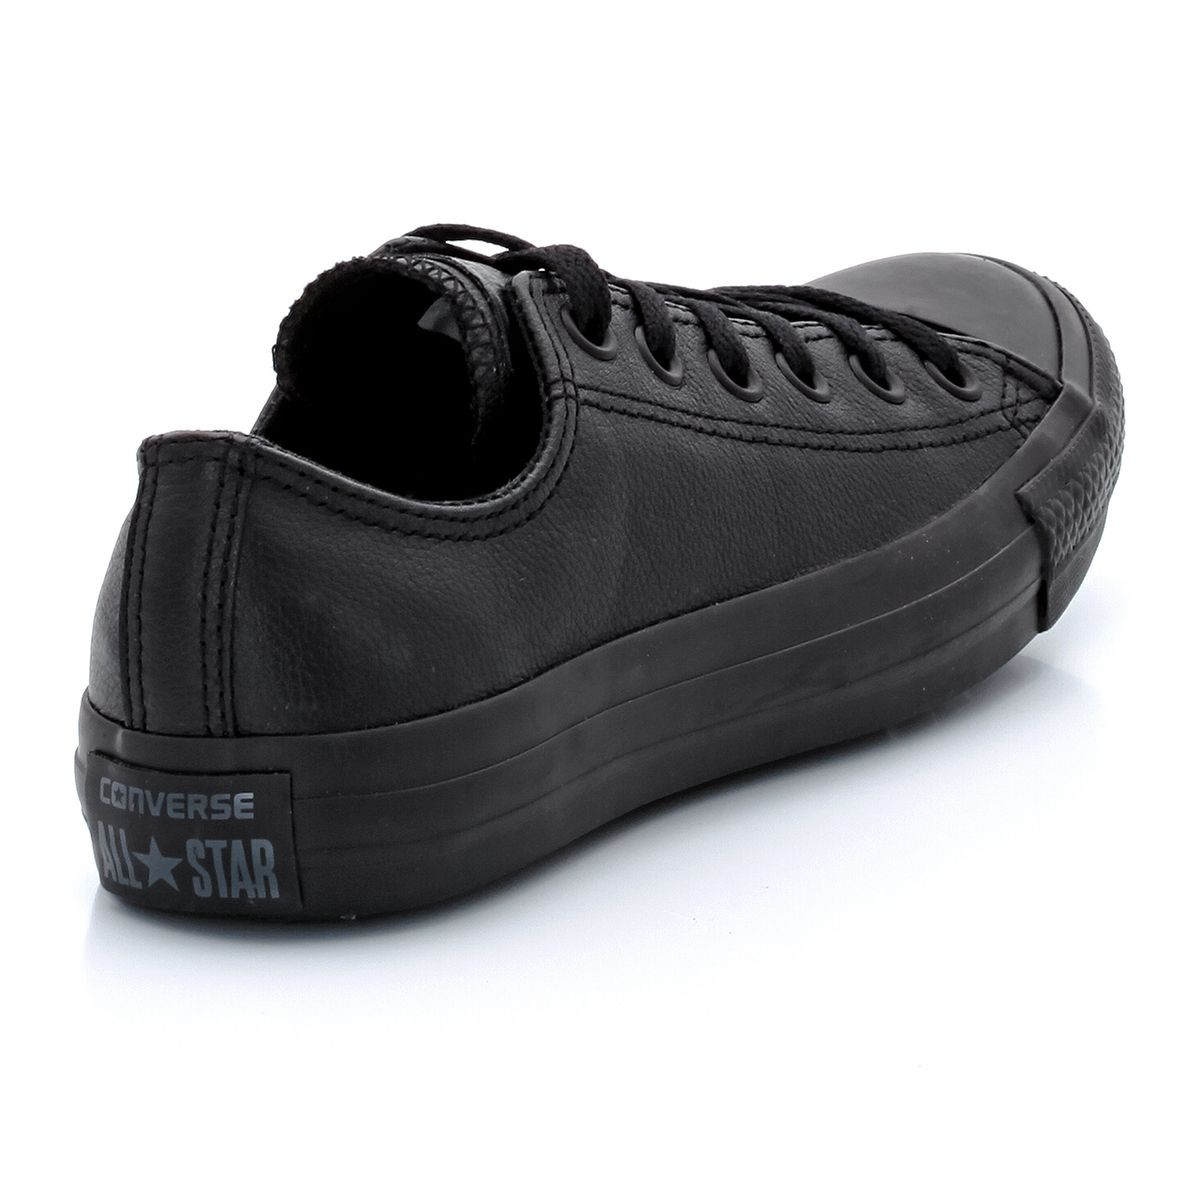 d52c8799f5bd6 Baskets Basses Chuck Taylor All Star Ox Mono Cuir - Taille   36 37